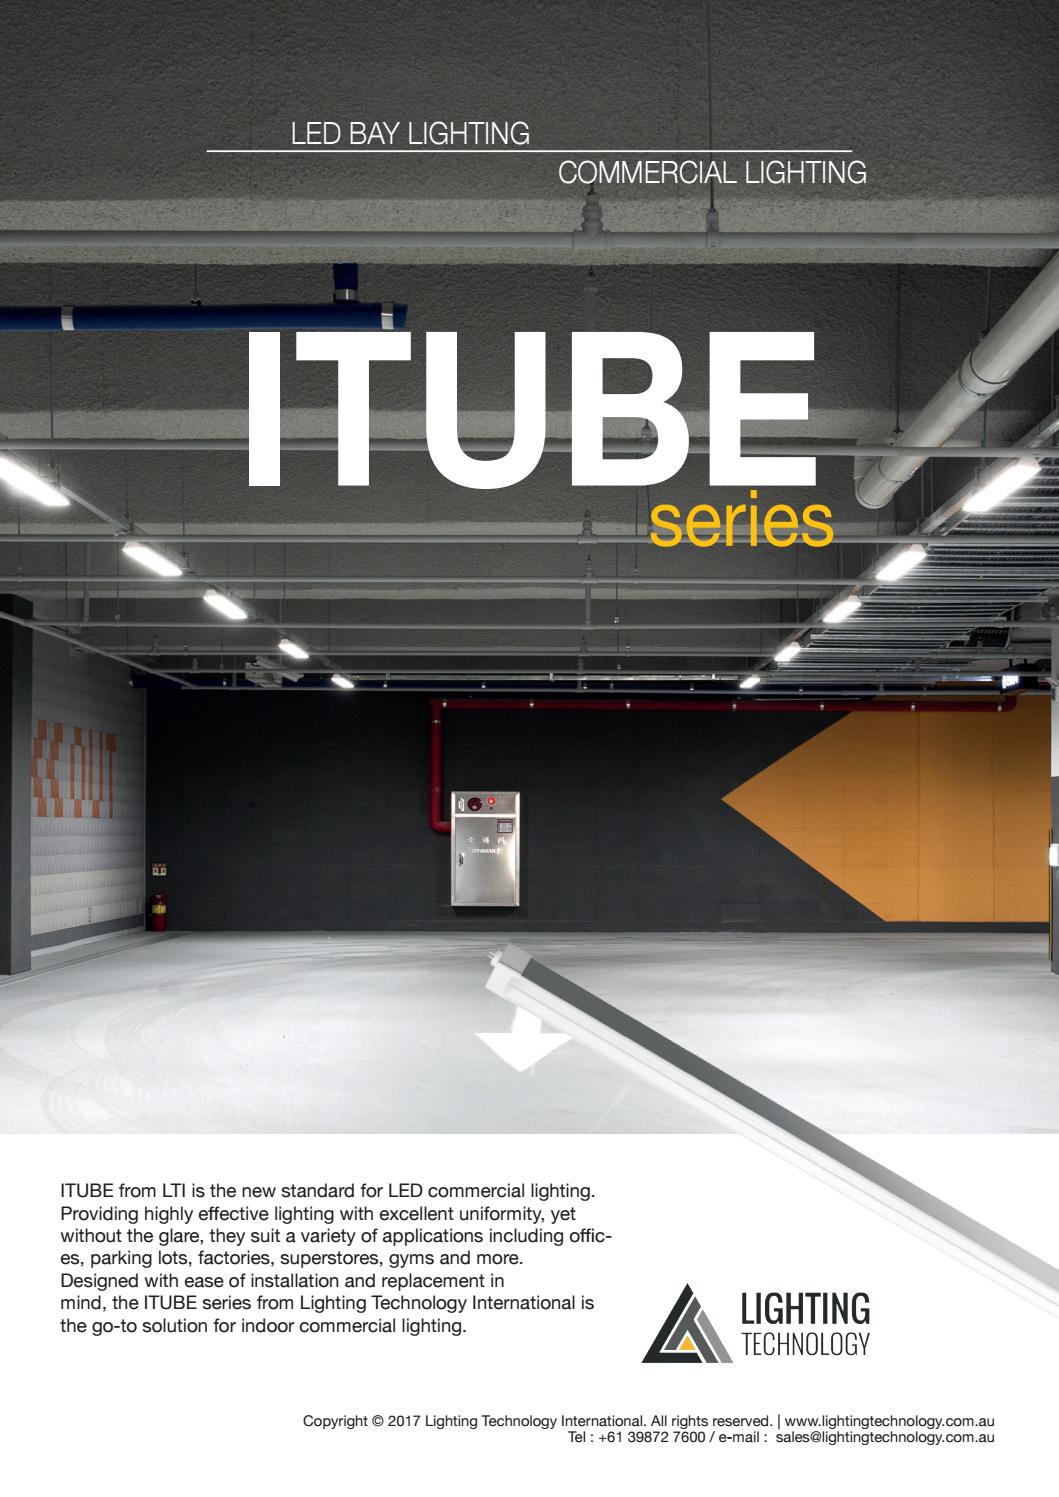 Itube series led commercial lighting in australia by lighting itube series led commercial lighting in australia by lighting technology by lighting technology issuu aloadofball Image collections